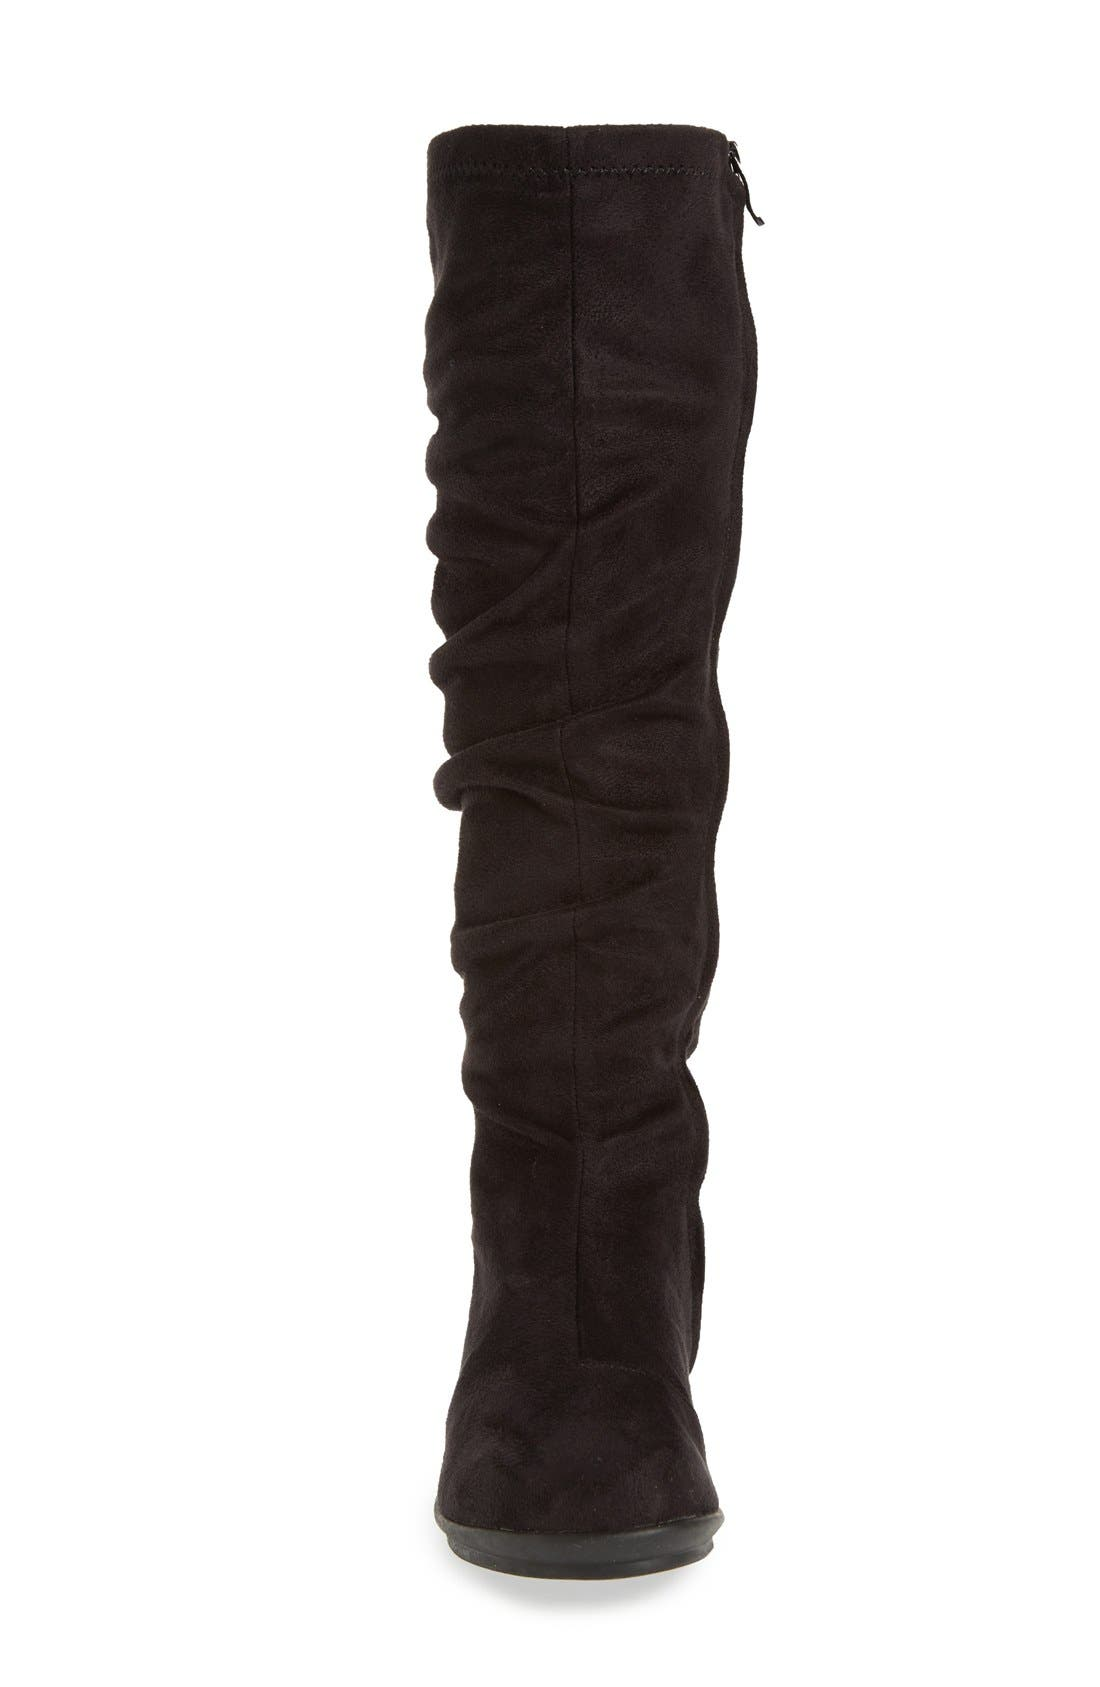 BUSSOLA,                             'Creta' Water Resistant Slouchy Knee-High Boot,                             Alternate thumbnail 2, color,                             001